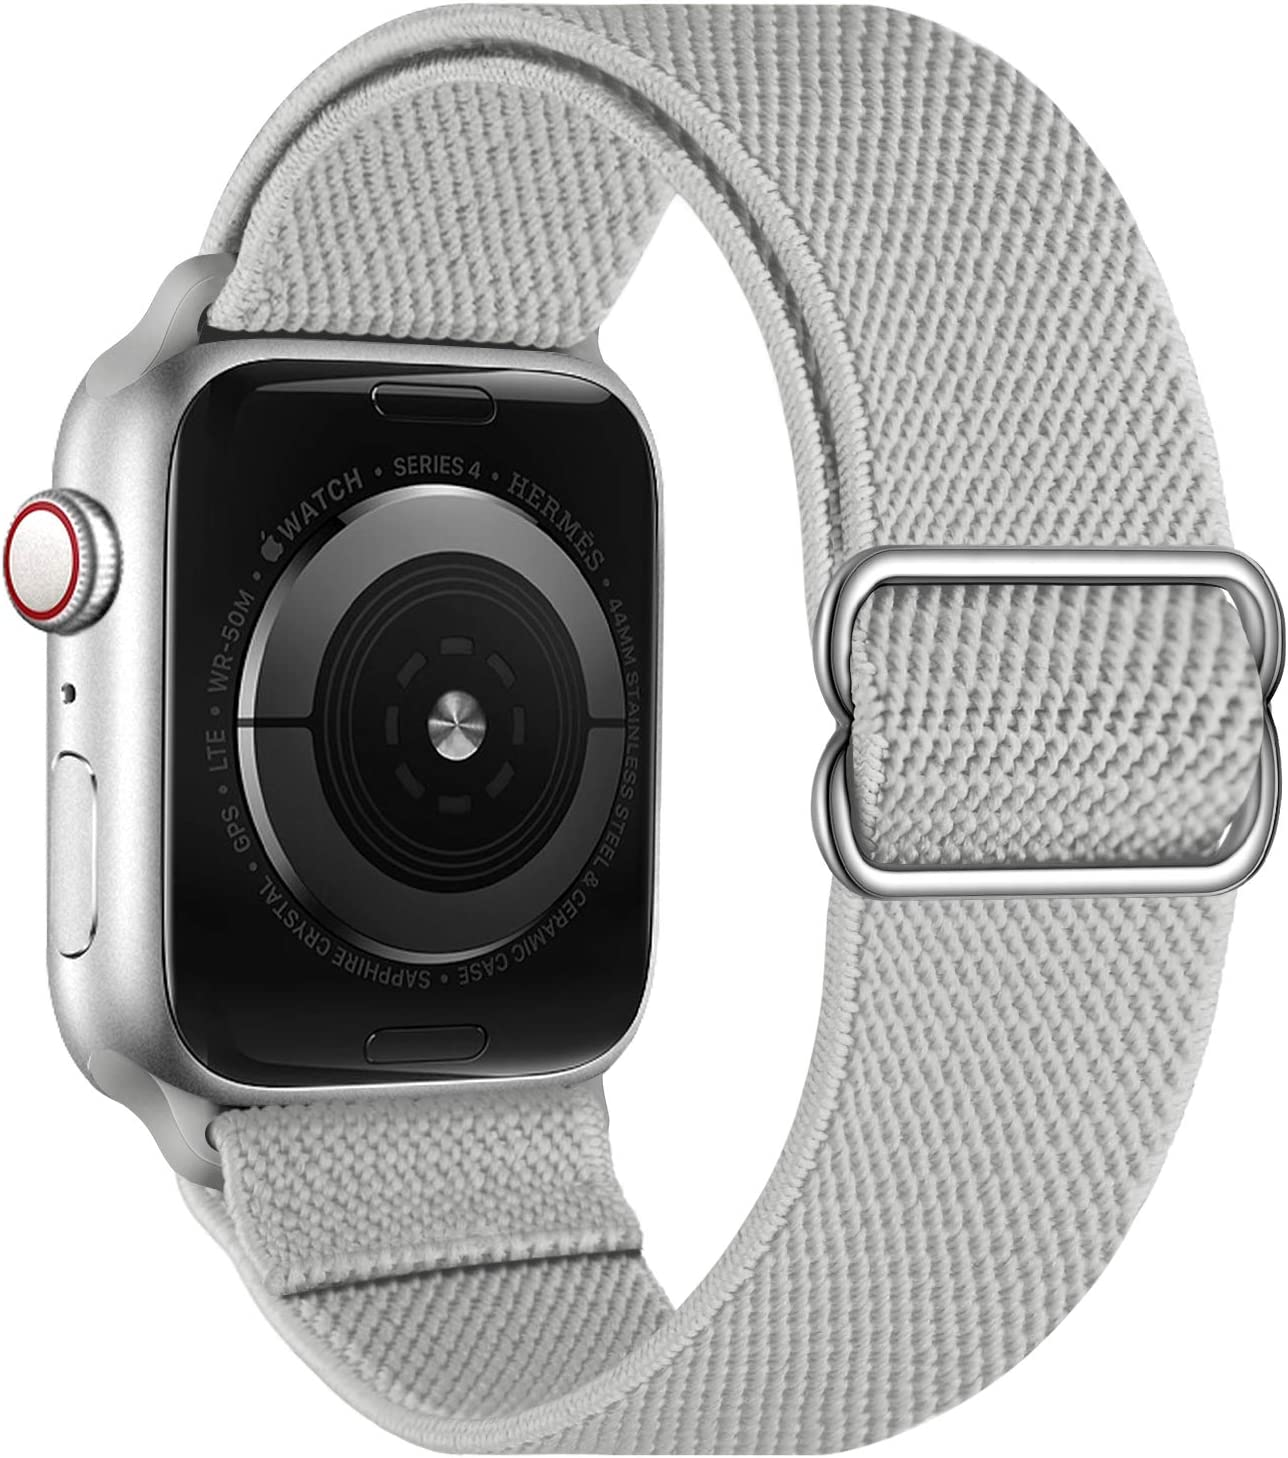 OXWALLEN Stretchy Nylon Solo Loop Compatible with Apple Watch Bands 38mm 40mm, Adjustable Elastic Braided Stretches Sport Women Men Strap for iWatch SE Series 6/5/4/3/2/1,Gray